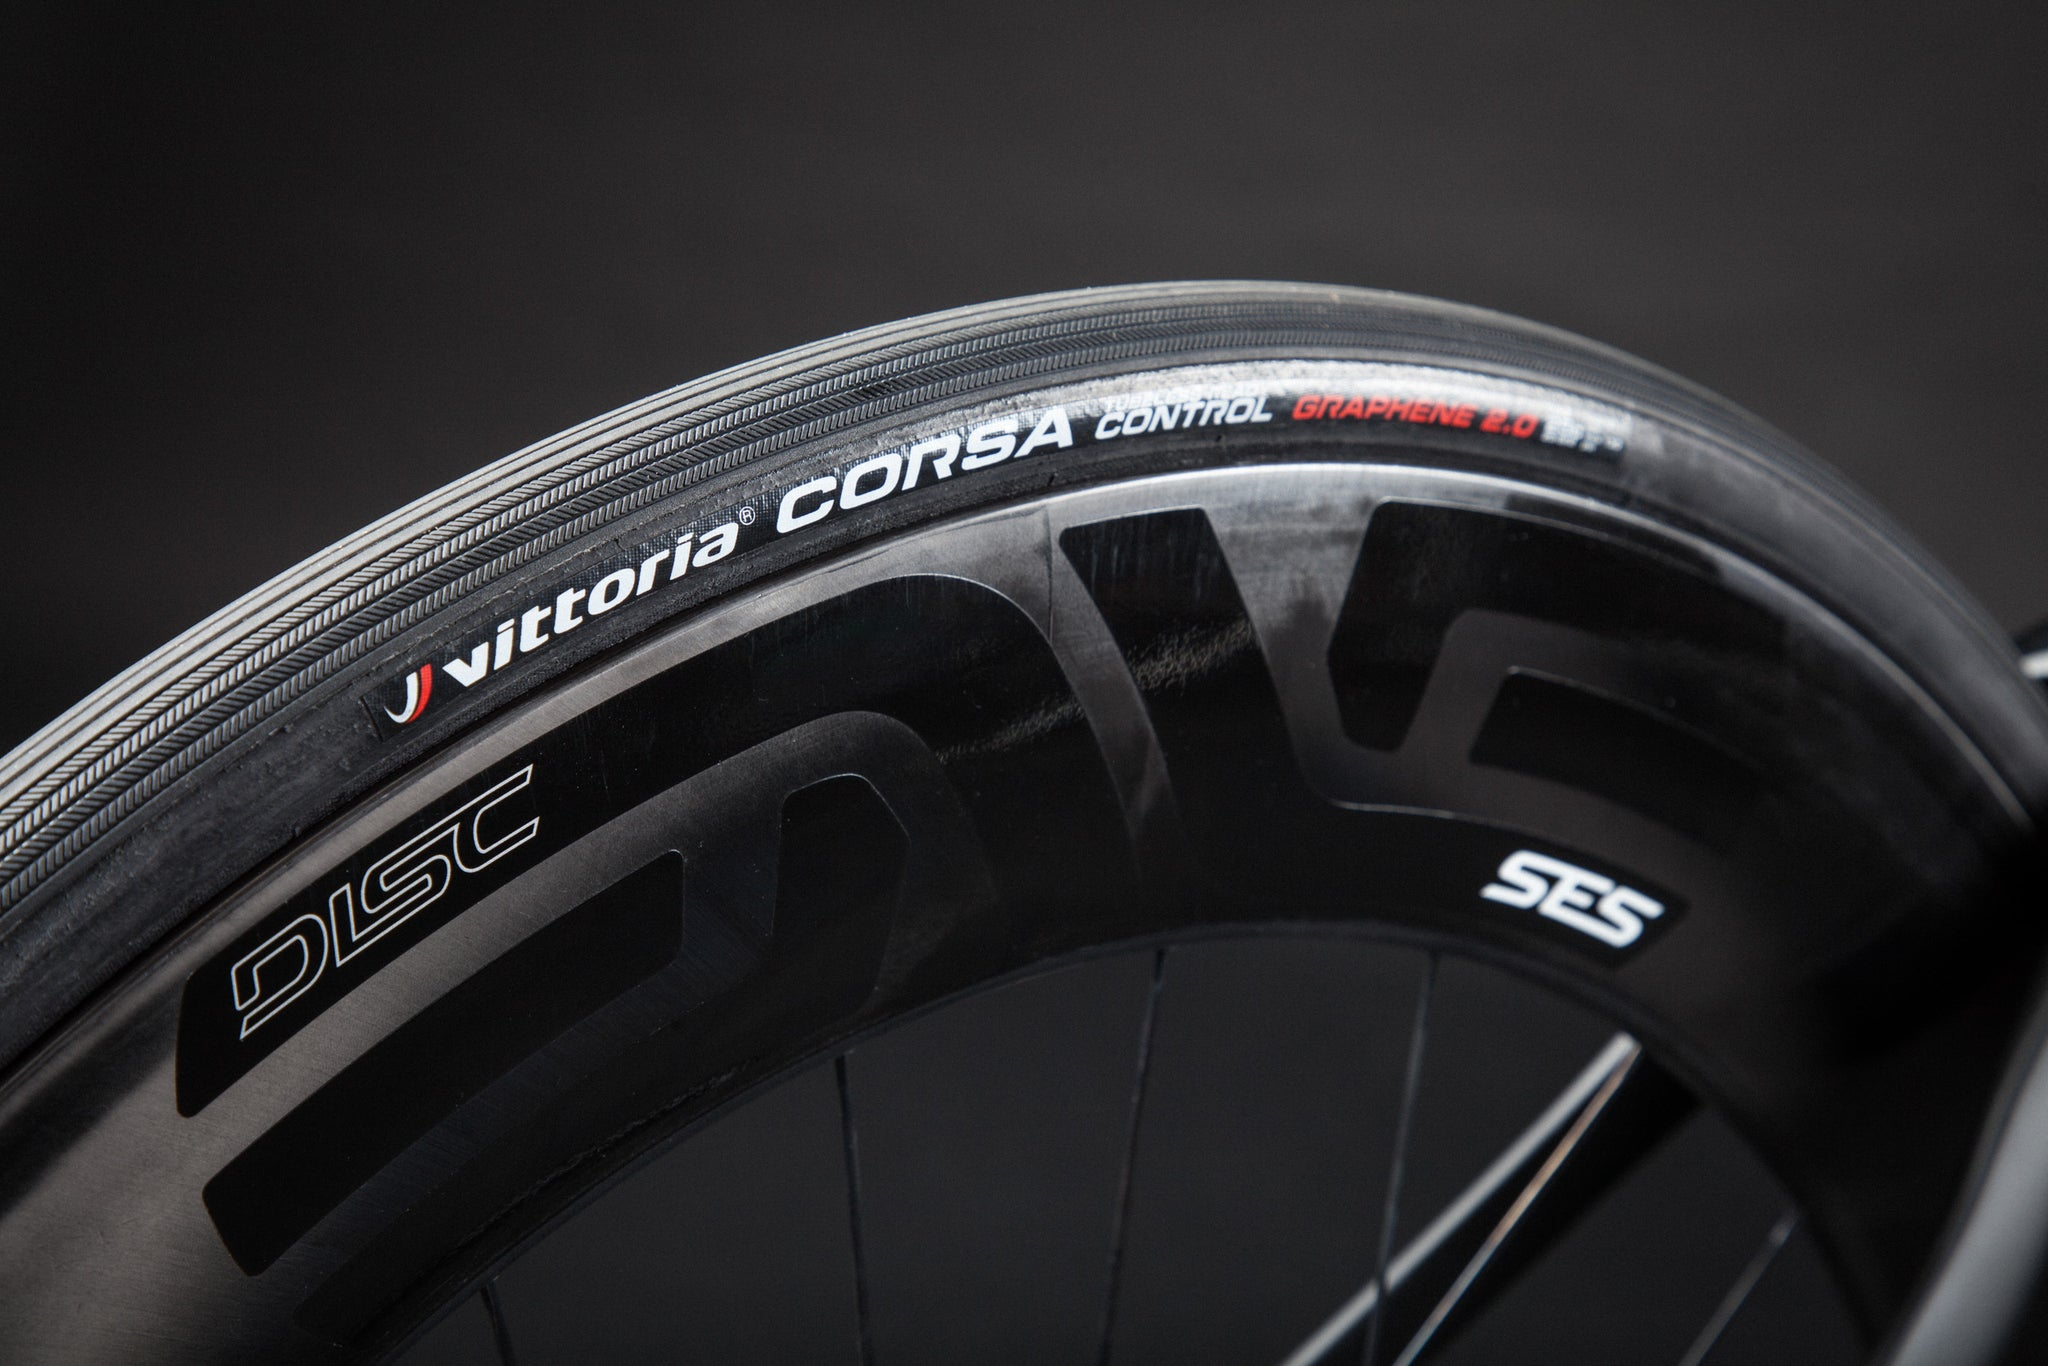 A Blacked Out Pinarello Bolide Gallery enve 7.8 rim vittoria